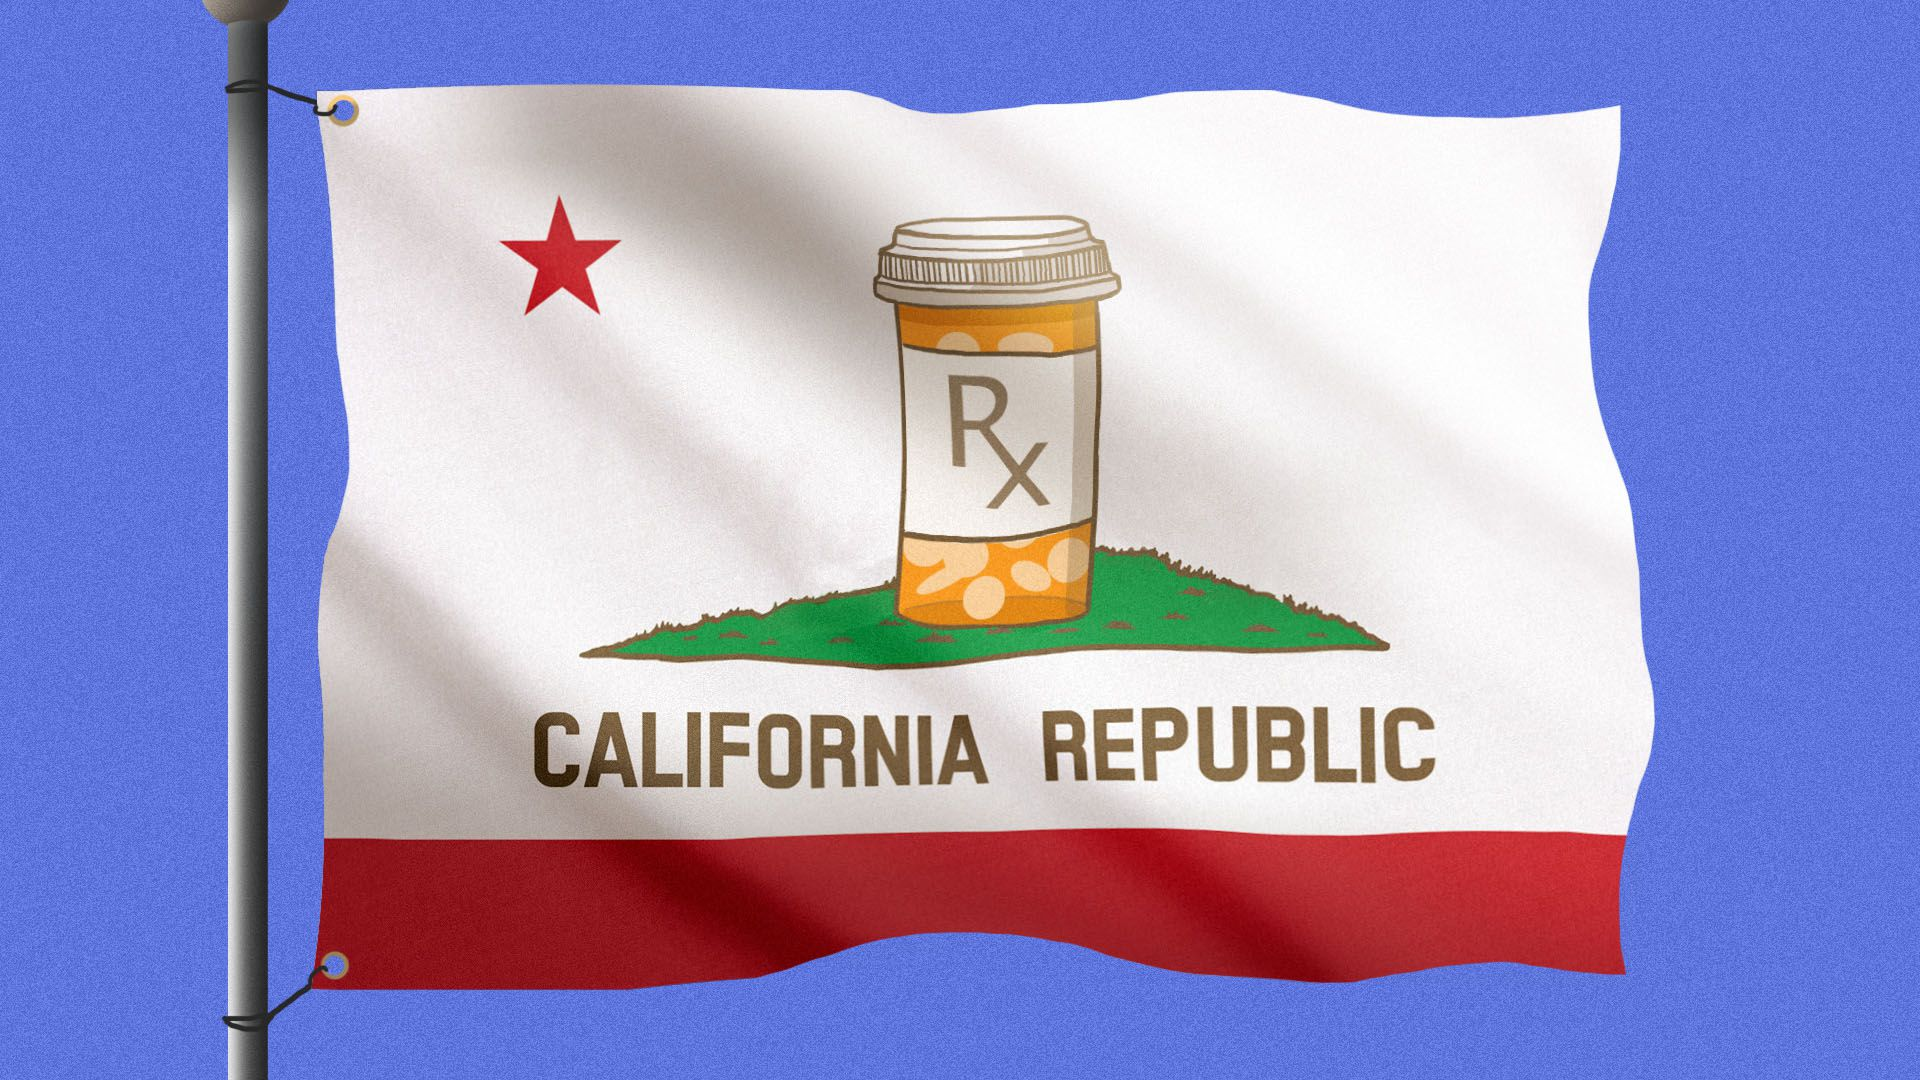 Illustration of the California state flag with the bear replaced by a pill bottle